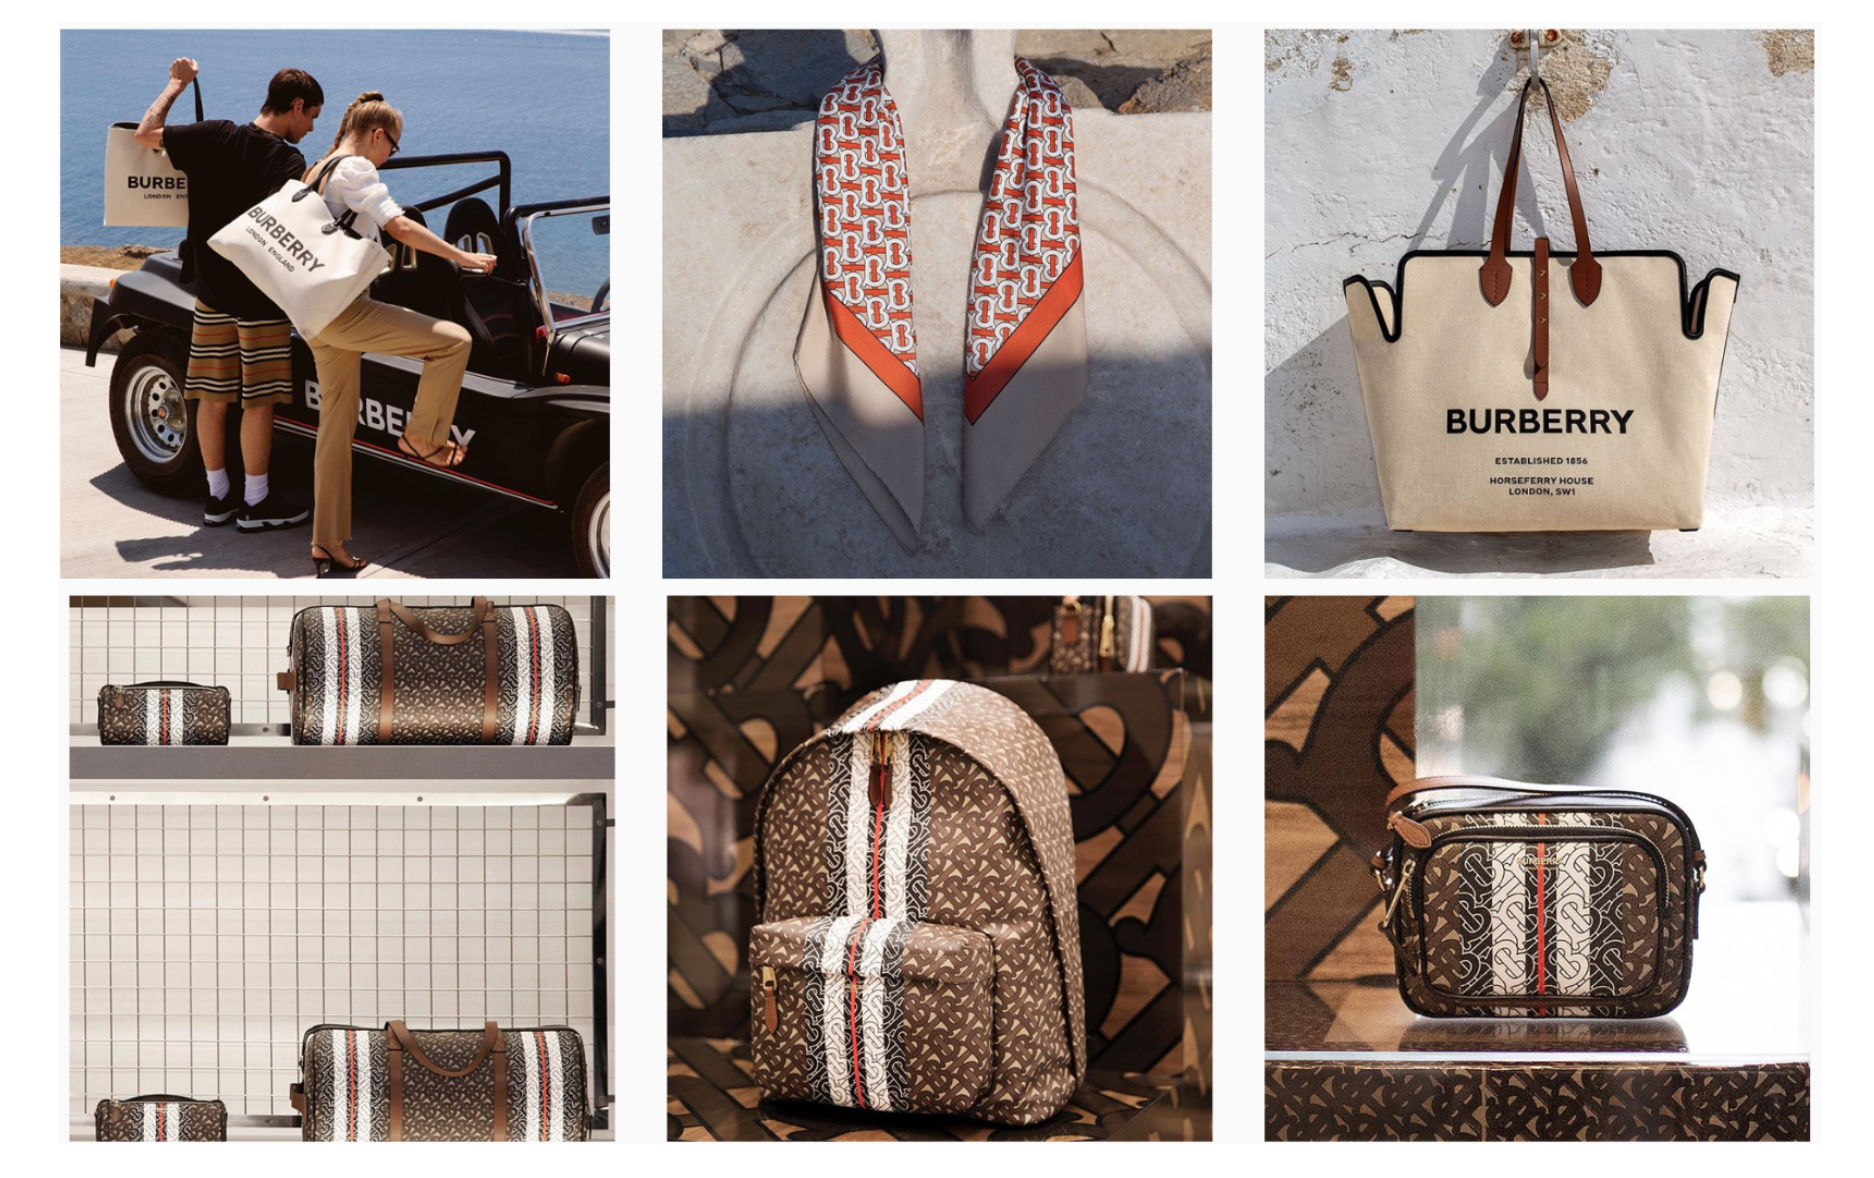 images: Burberry